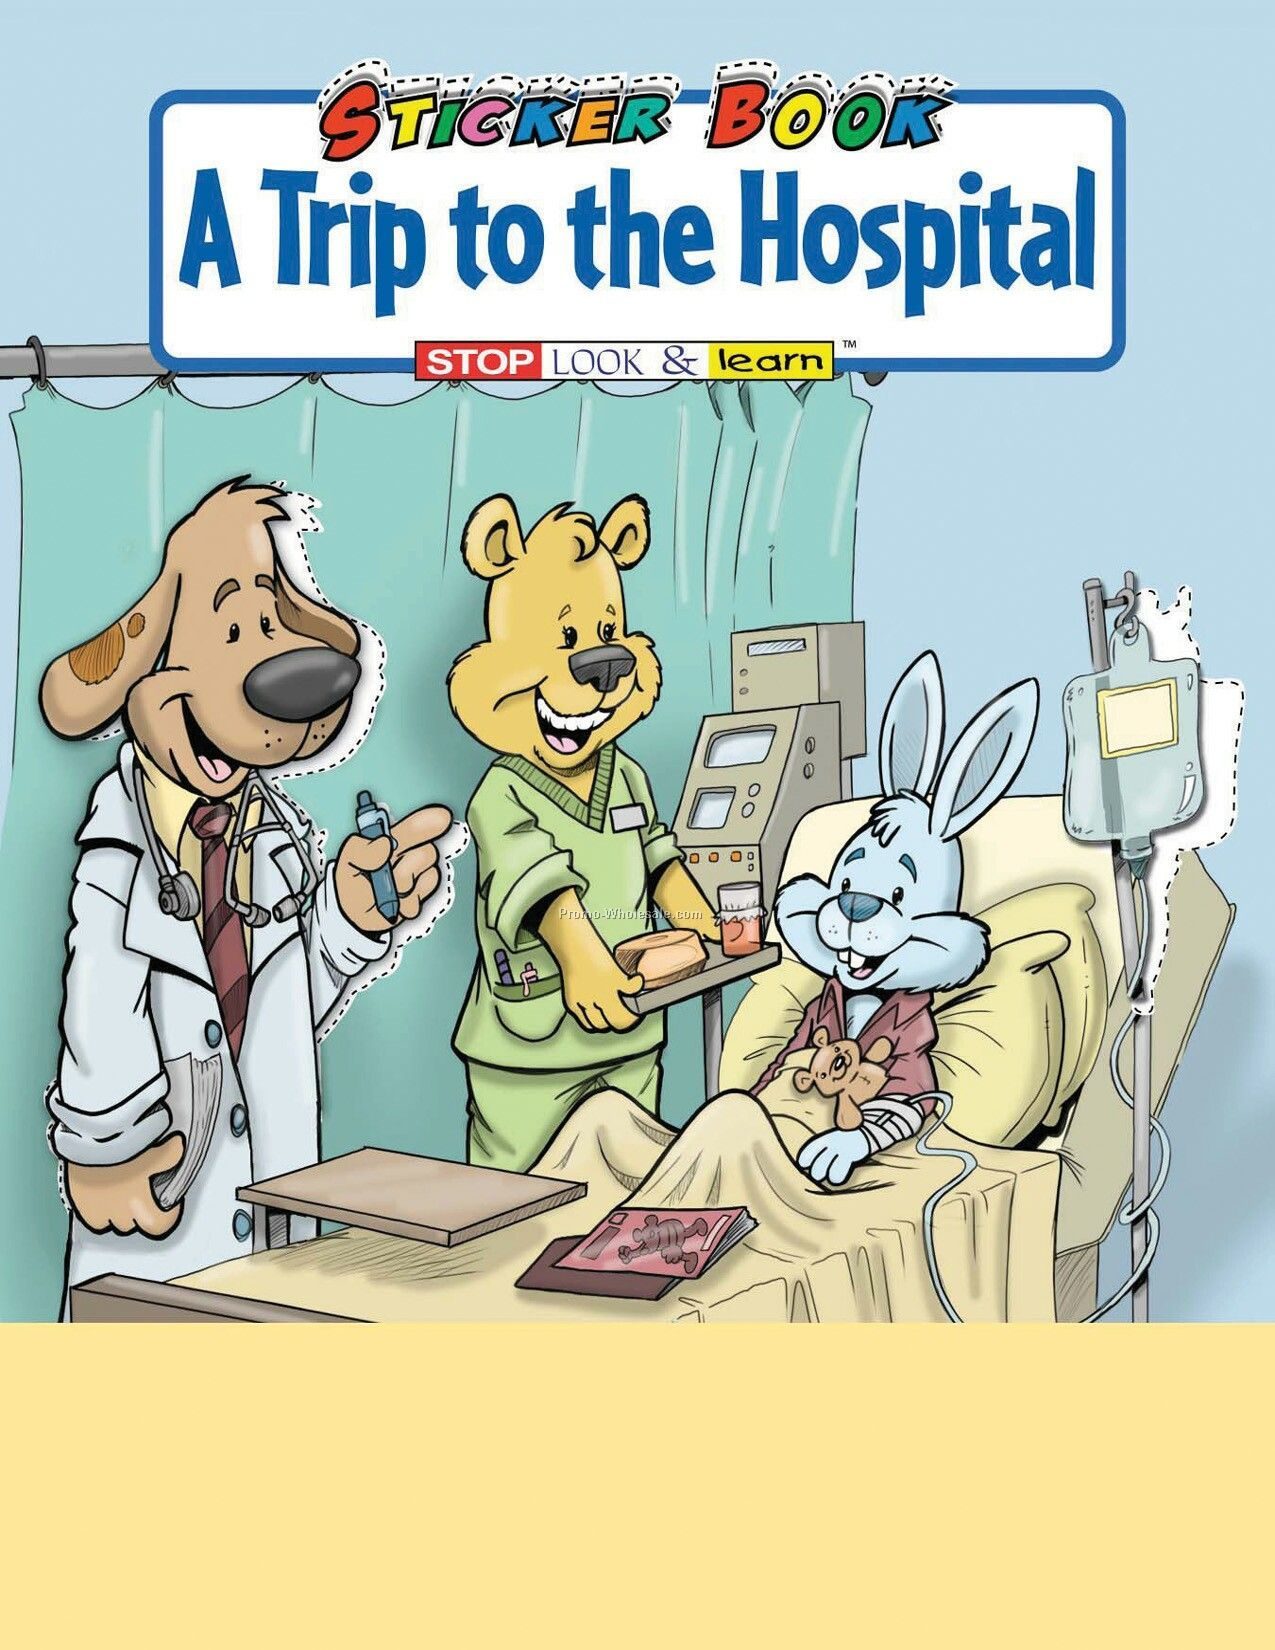 Childrens hospital coloring book - A Trip To The Hospital Sticker Book